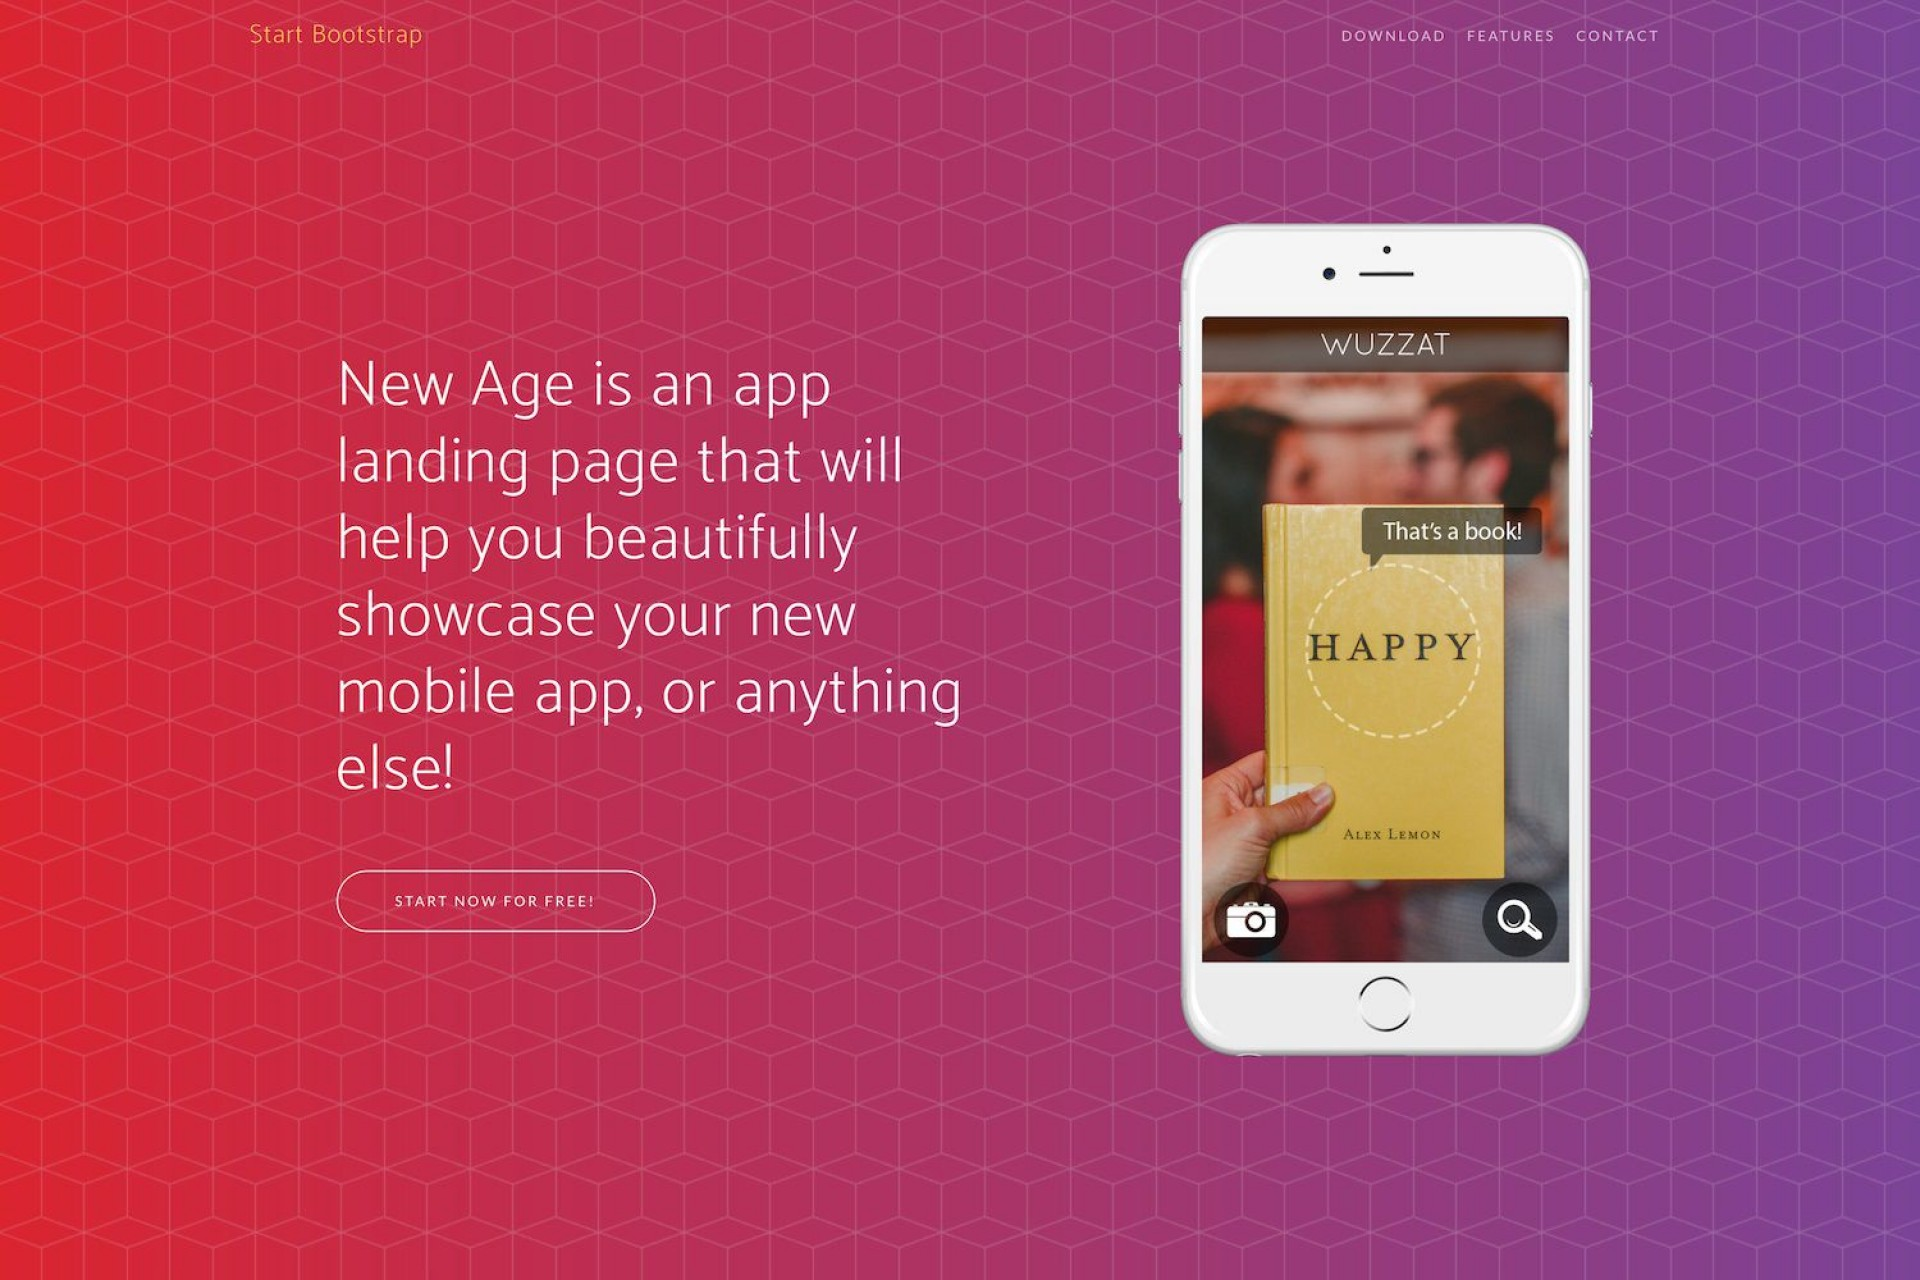 007 Best Bootstrap Mobile App Template High Resolution  Html5 Form 41920